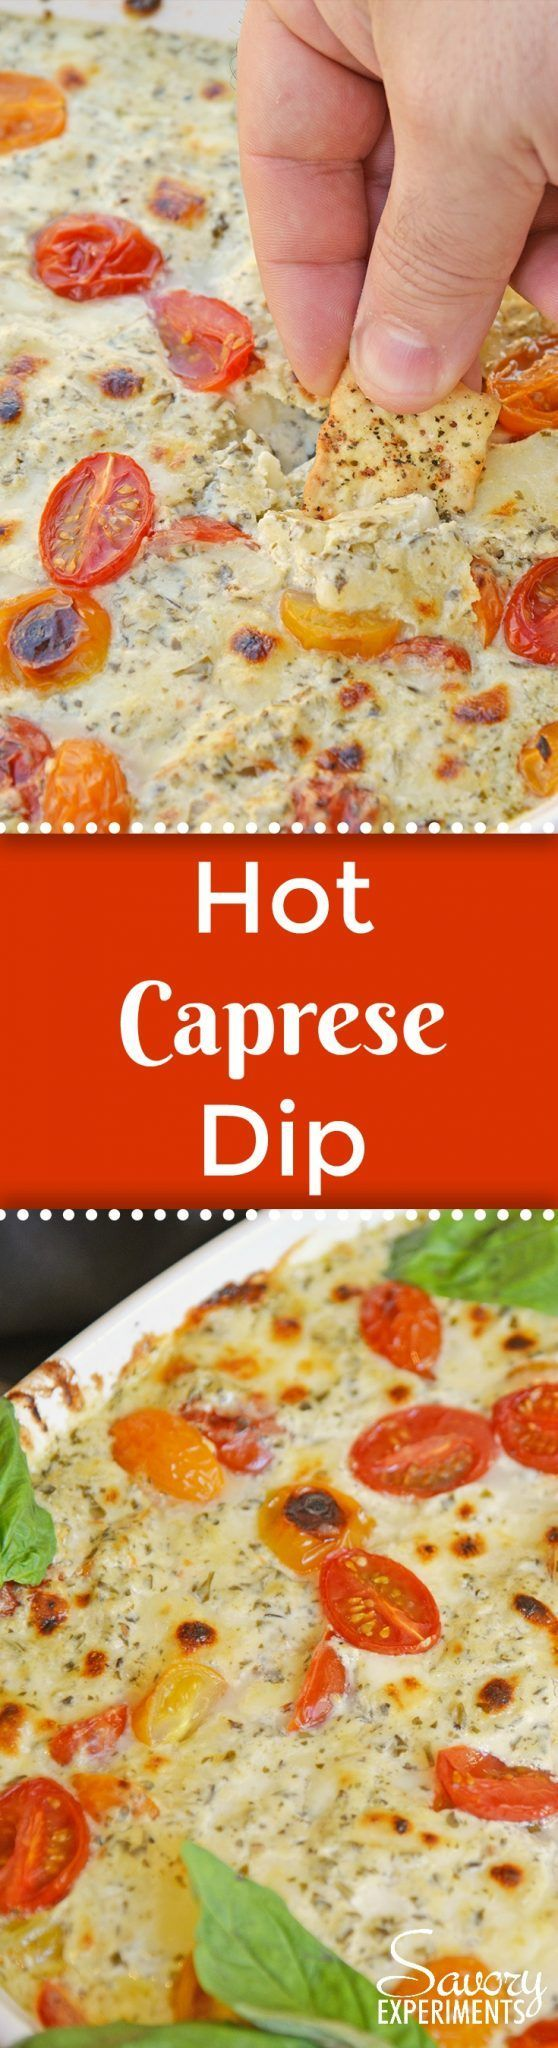 Hot Caprese Dip is a party appetizer favorite using mozzarella, pesto and sweet tomatoes. An easy appetizer your guests will love! #capresedip #capresesalad #partyappetizers www.savoryexperiments.com via @savorycooking